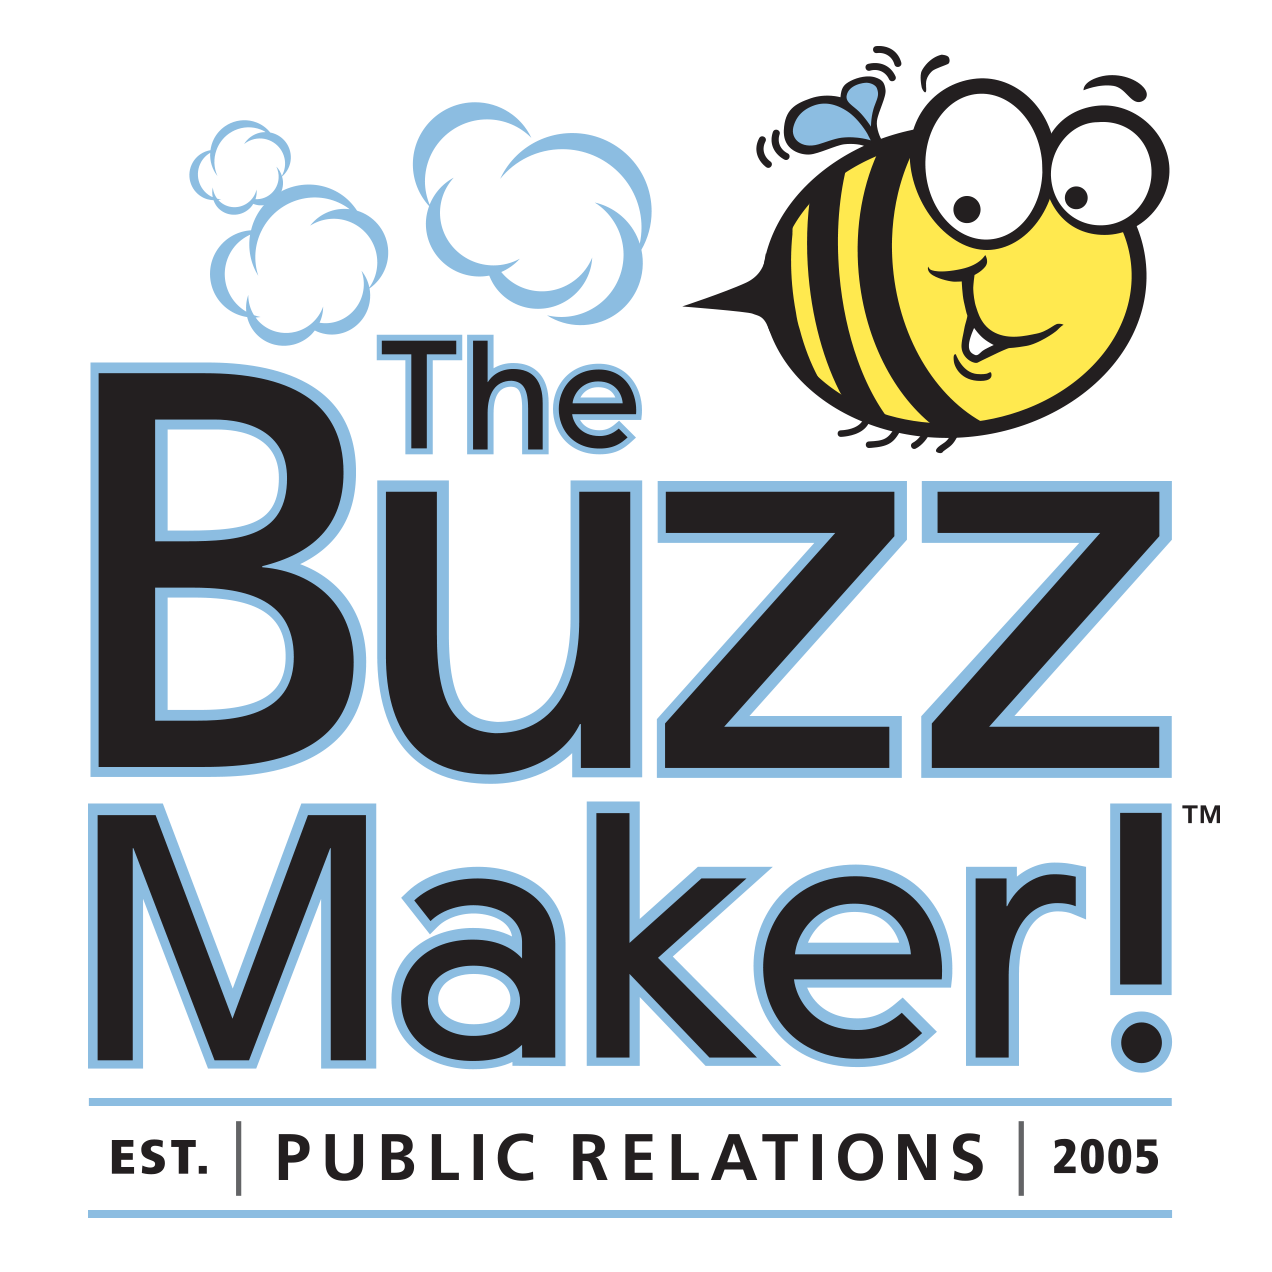 The Buzz Maker! - Ohio Public Relations